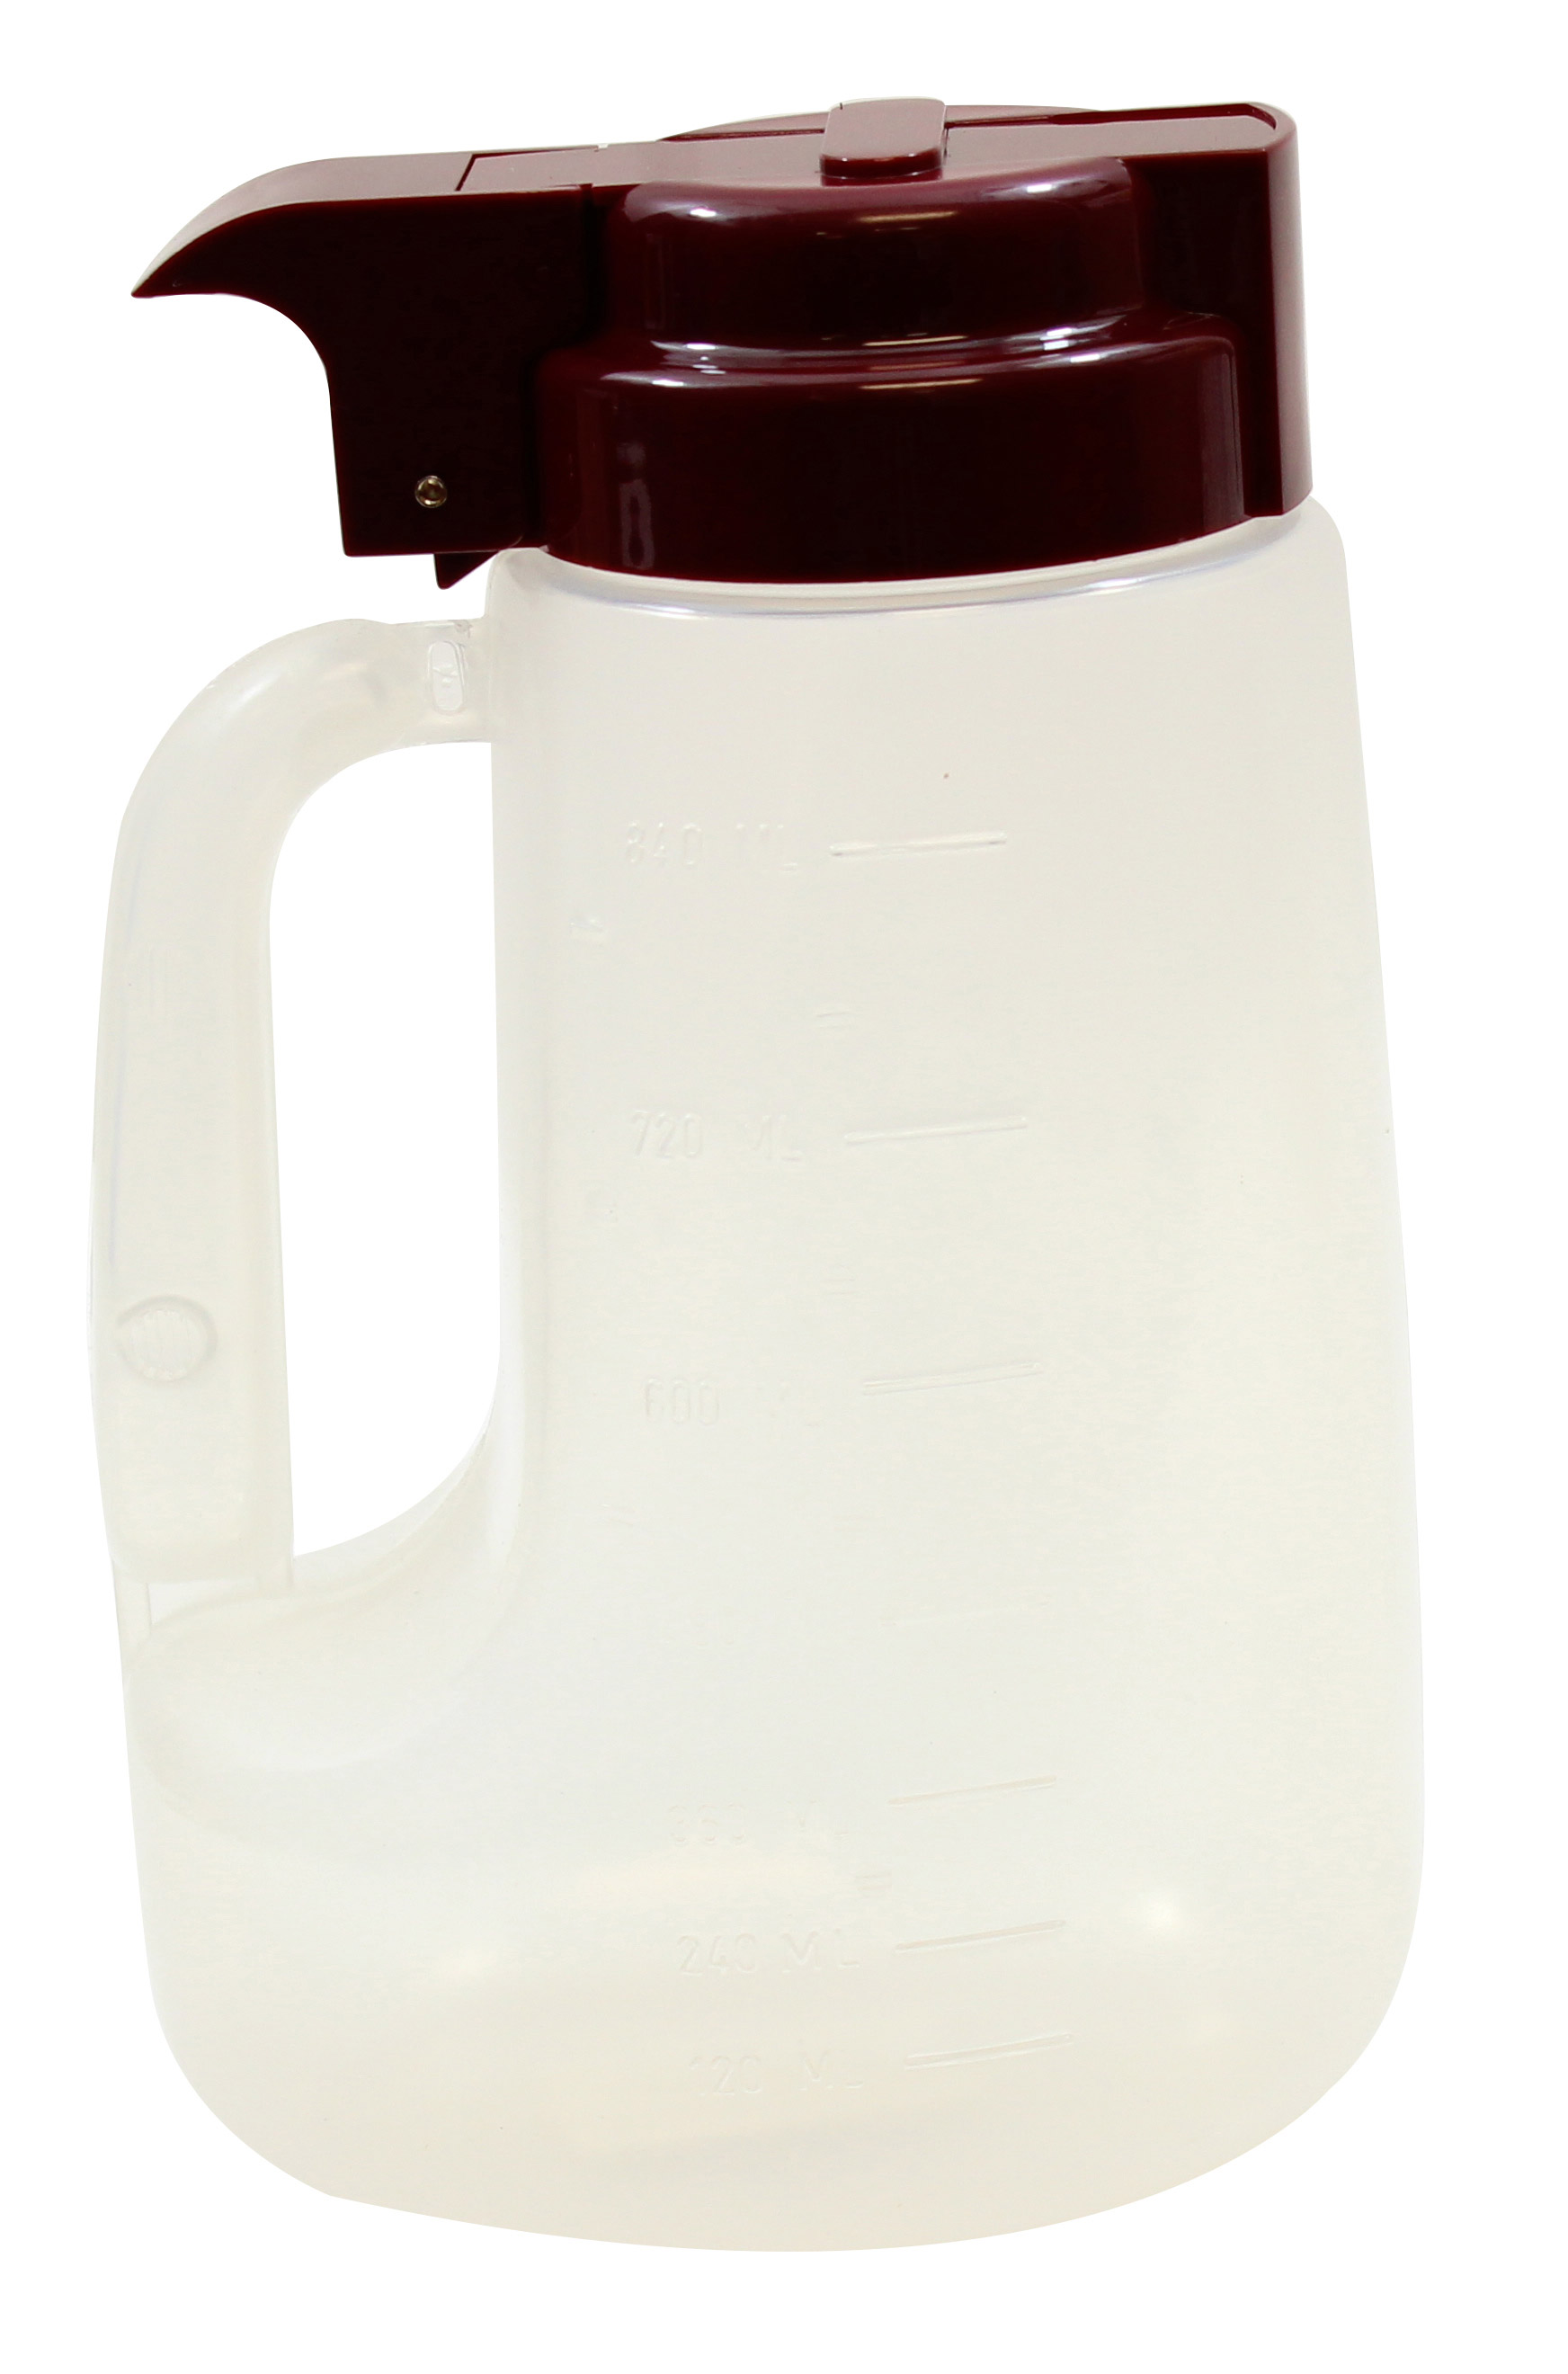 TableCraft Products PP32M syrup pourer